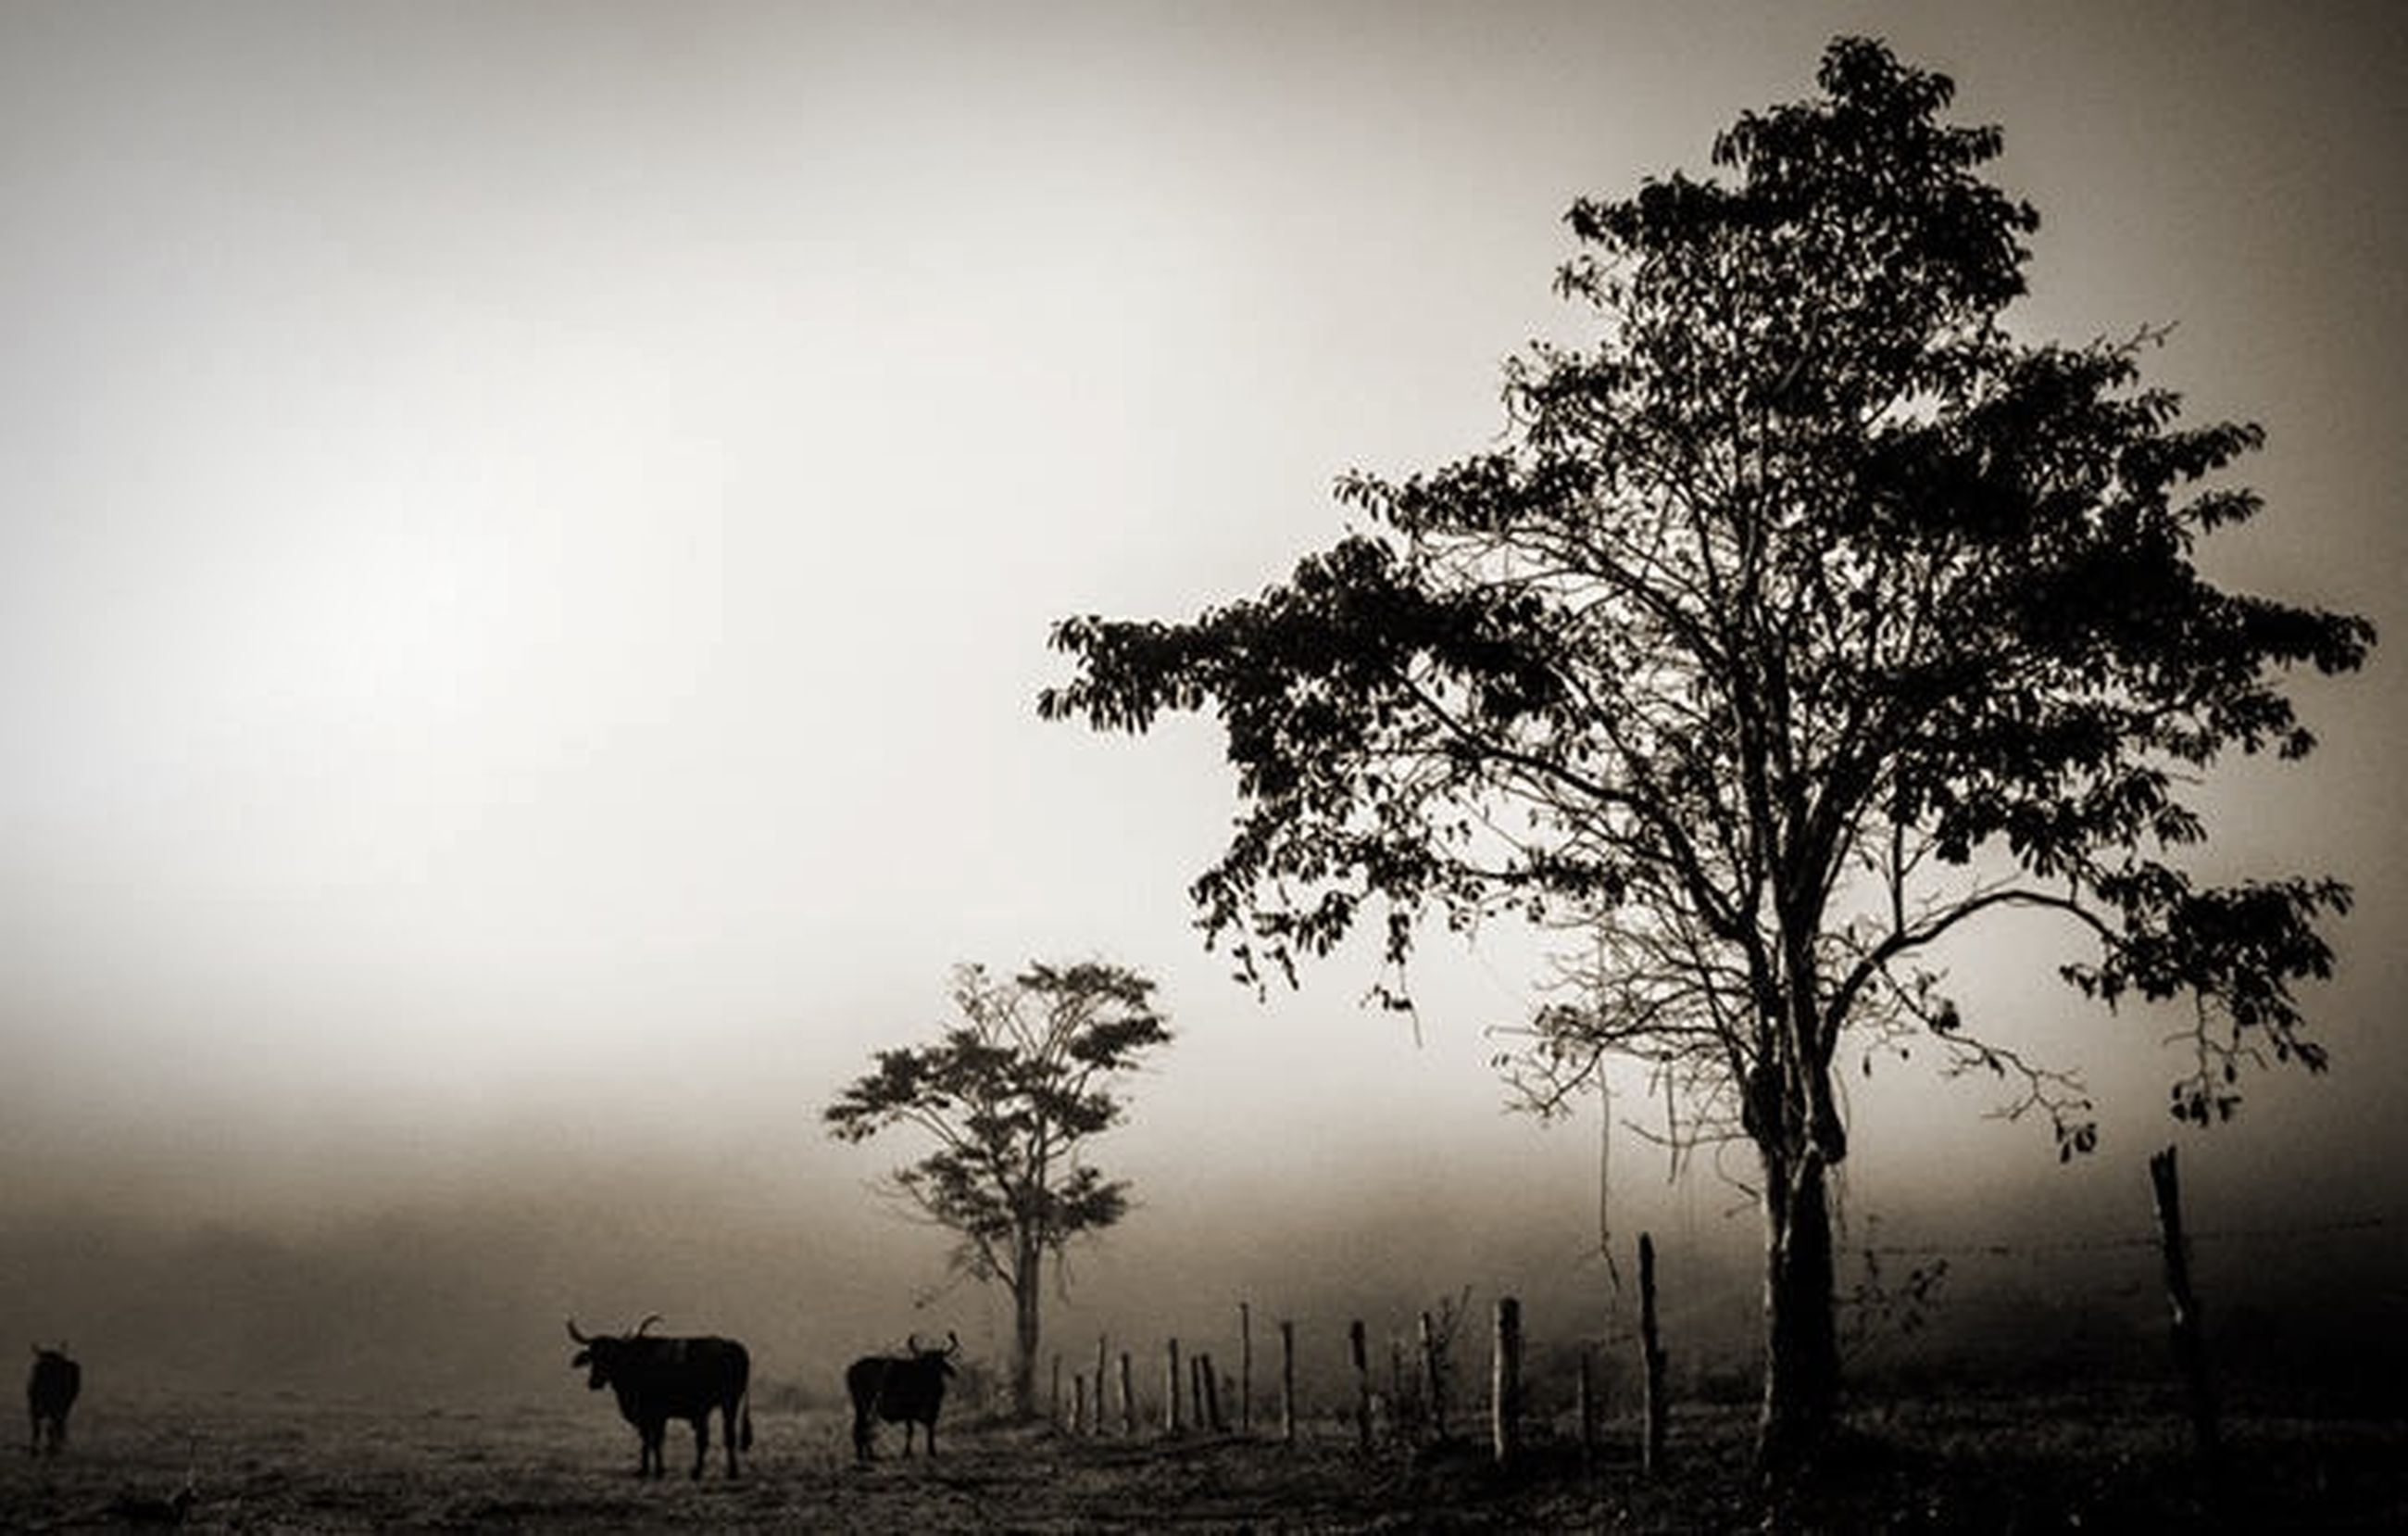 animal themes, mammal, domestic animals, fog, tree, horse, field, one animal, landscape, livestock, tranquility, nature, copy space, tranquil scene, foggy, beauty in nature, herbivorous, standing, two animals